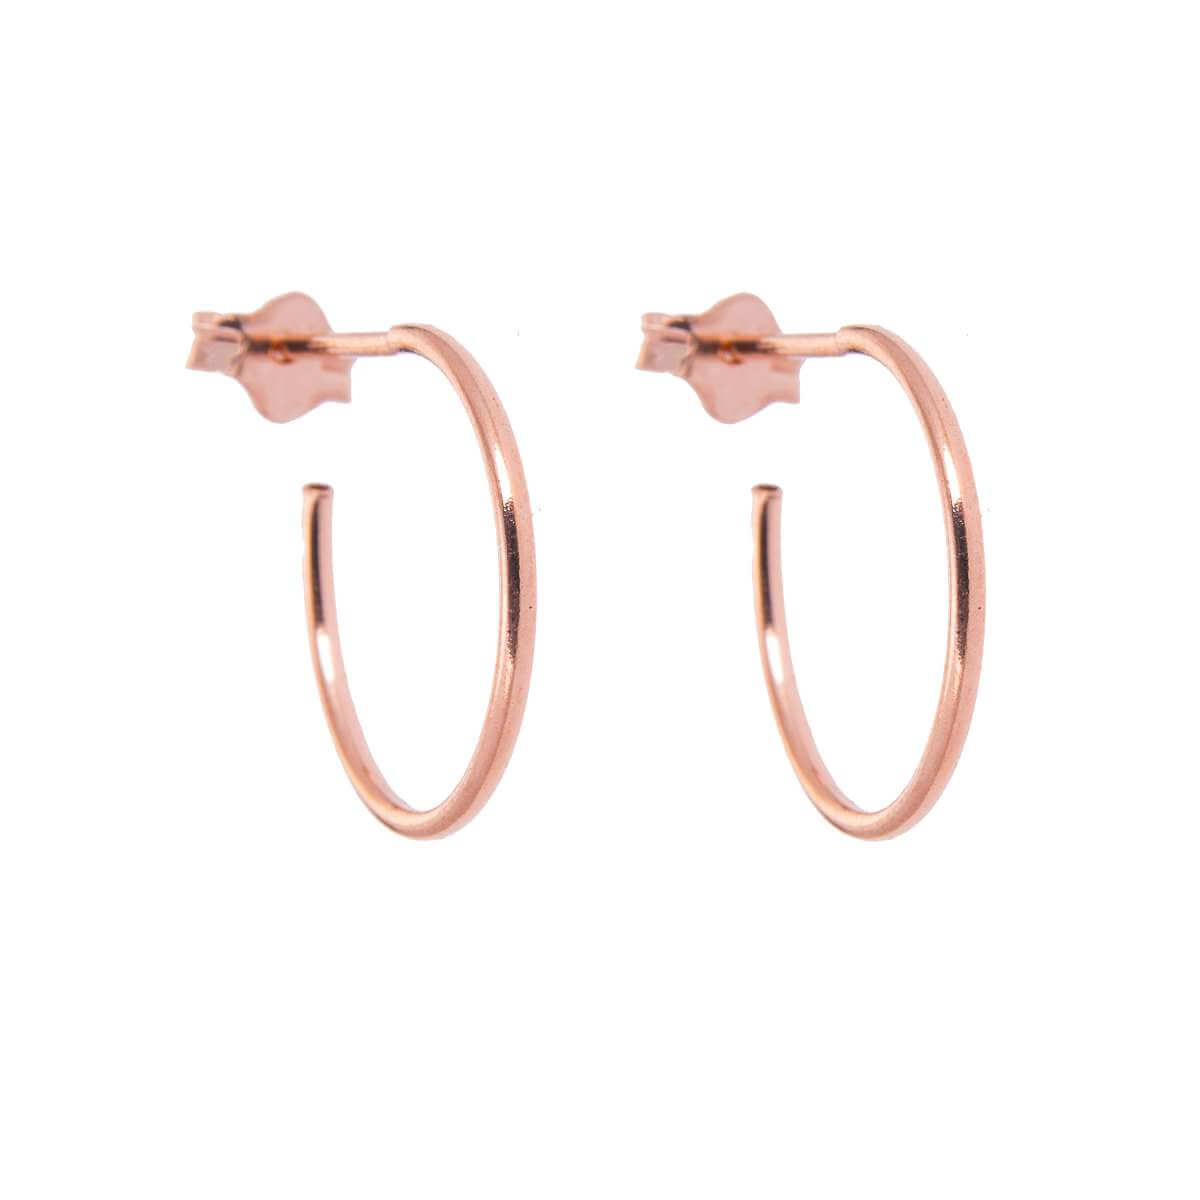 Rose Gold Plated Sterling Silver Open 16mm Hoop Stud Earrings